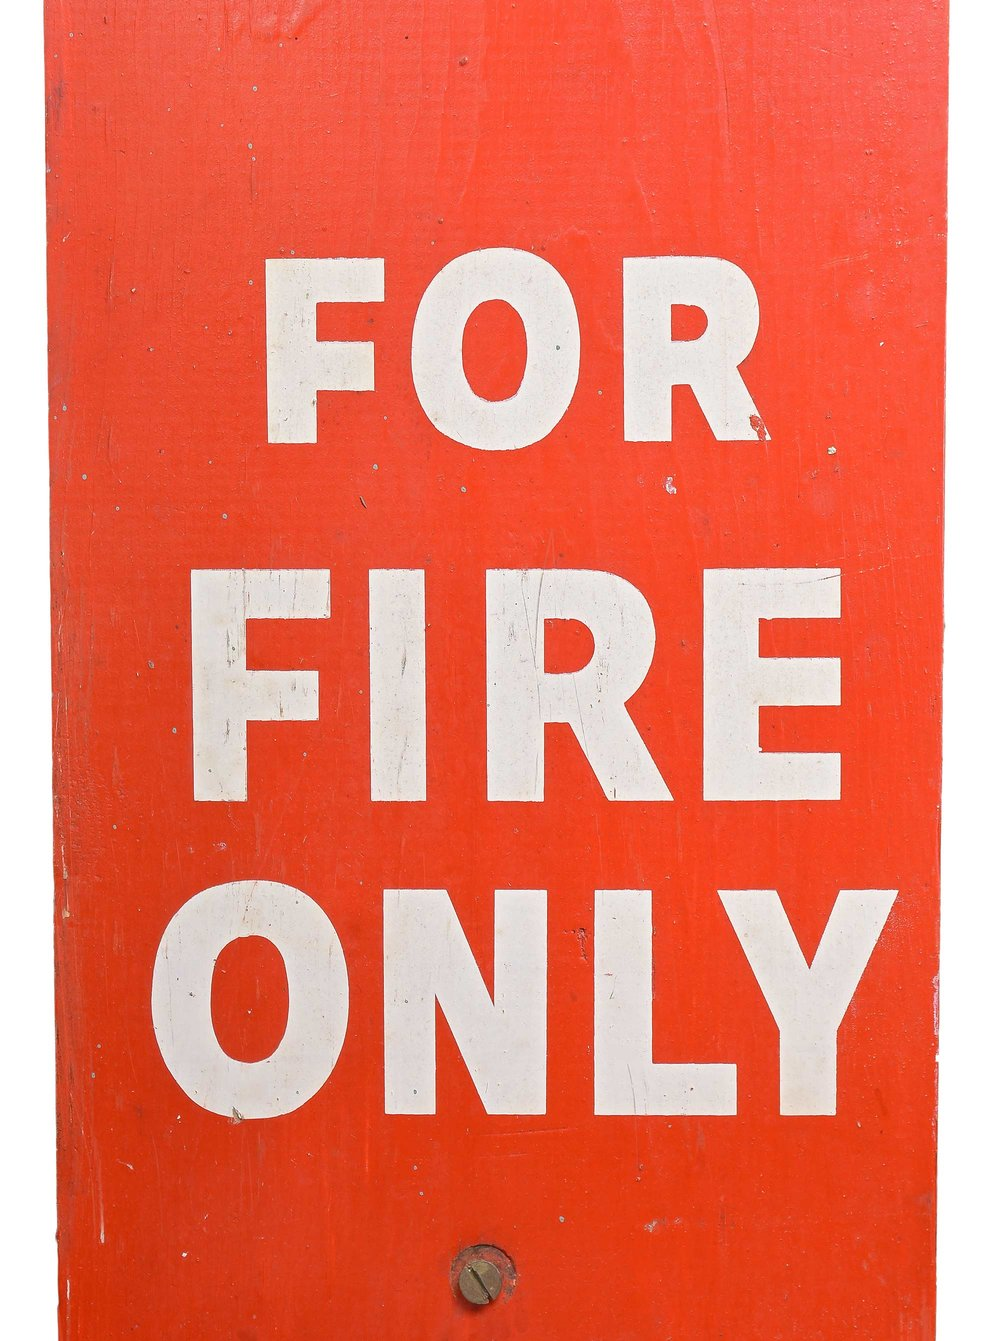 46425-fire-only-sign-detail.jpg